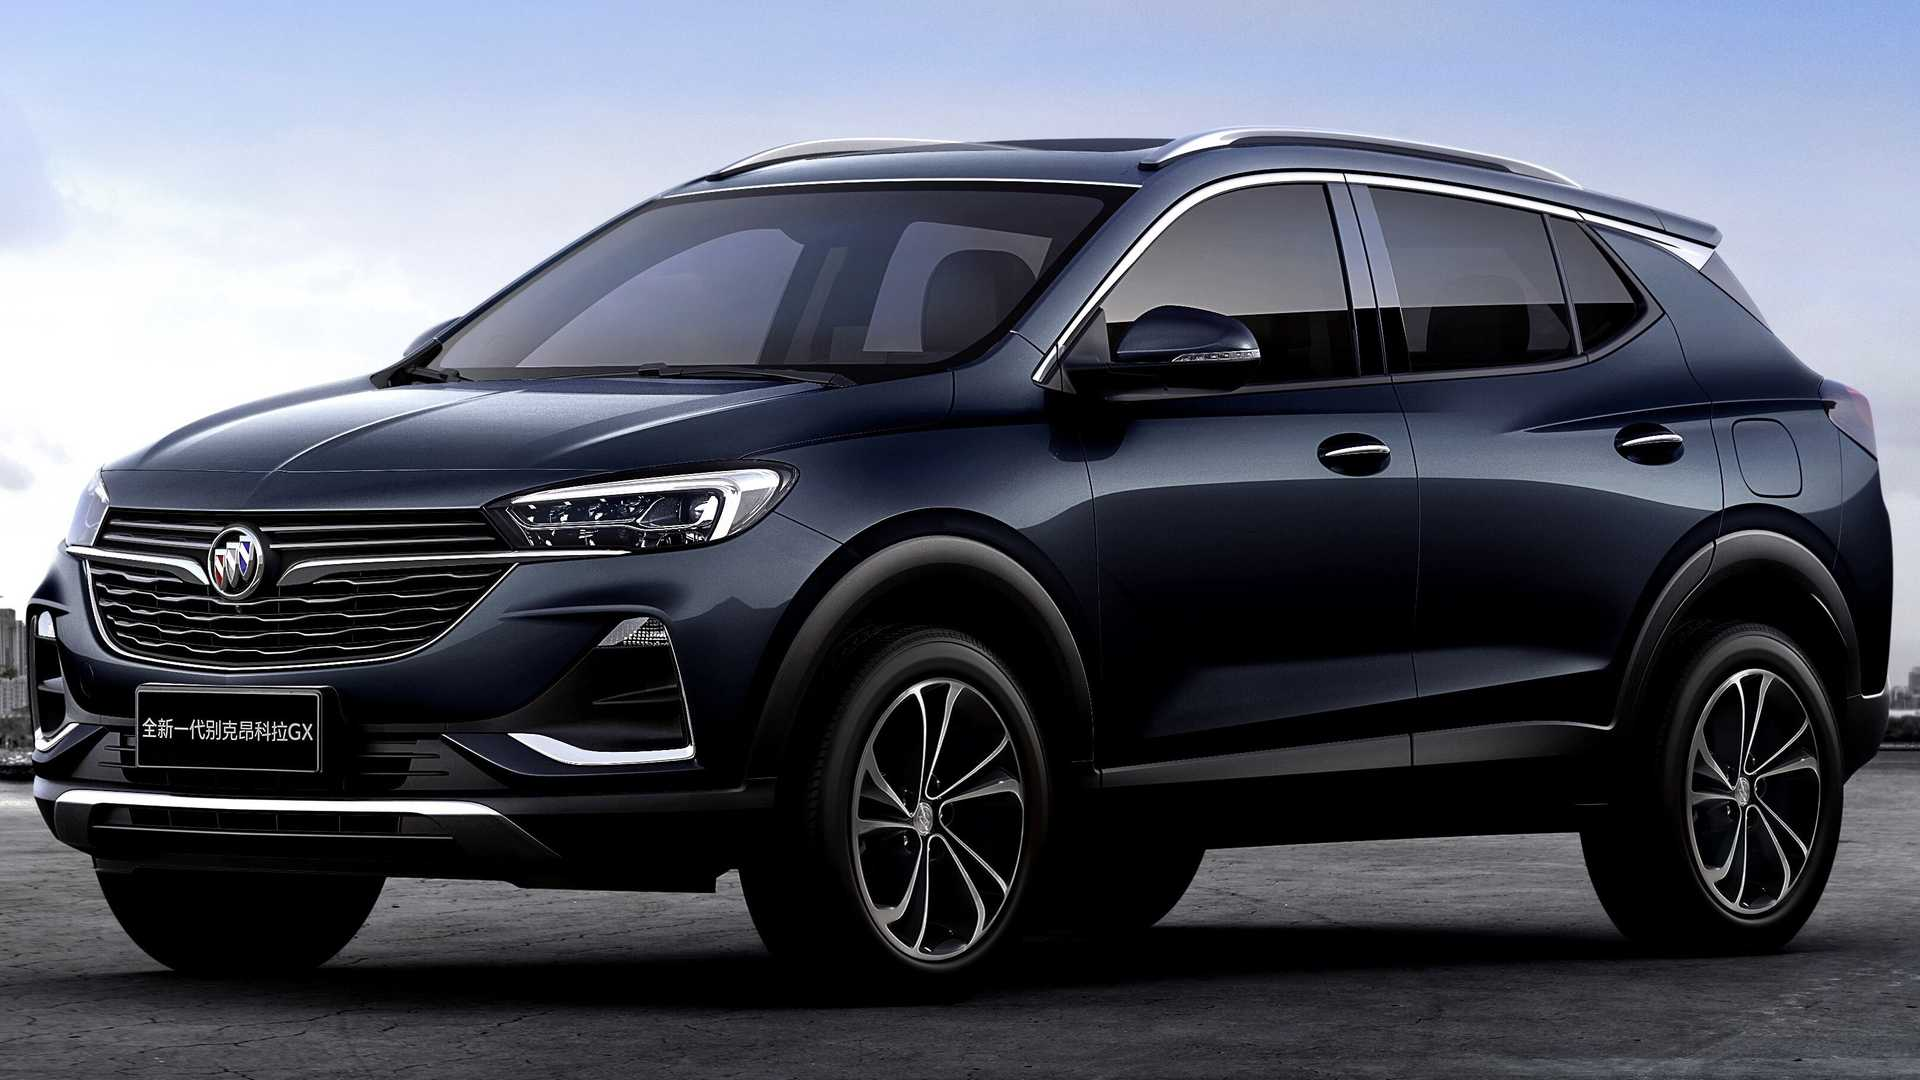 2019 Buick Small Electric SUV: News >> Buick Displays Three New Suvs At Auto Shanghai 2019